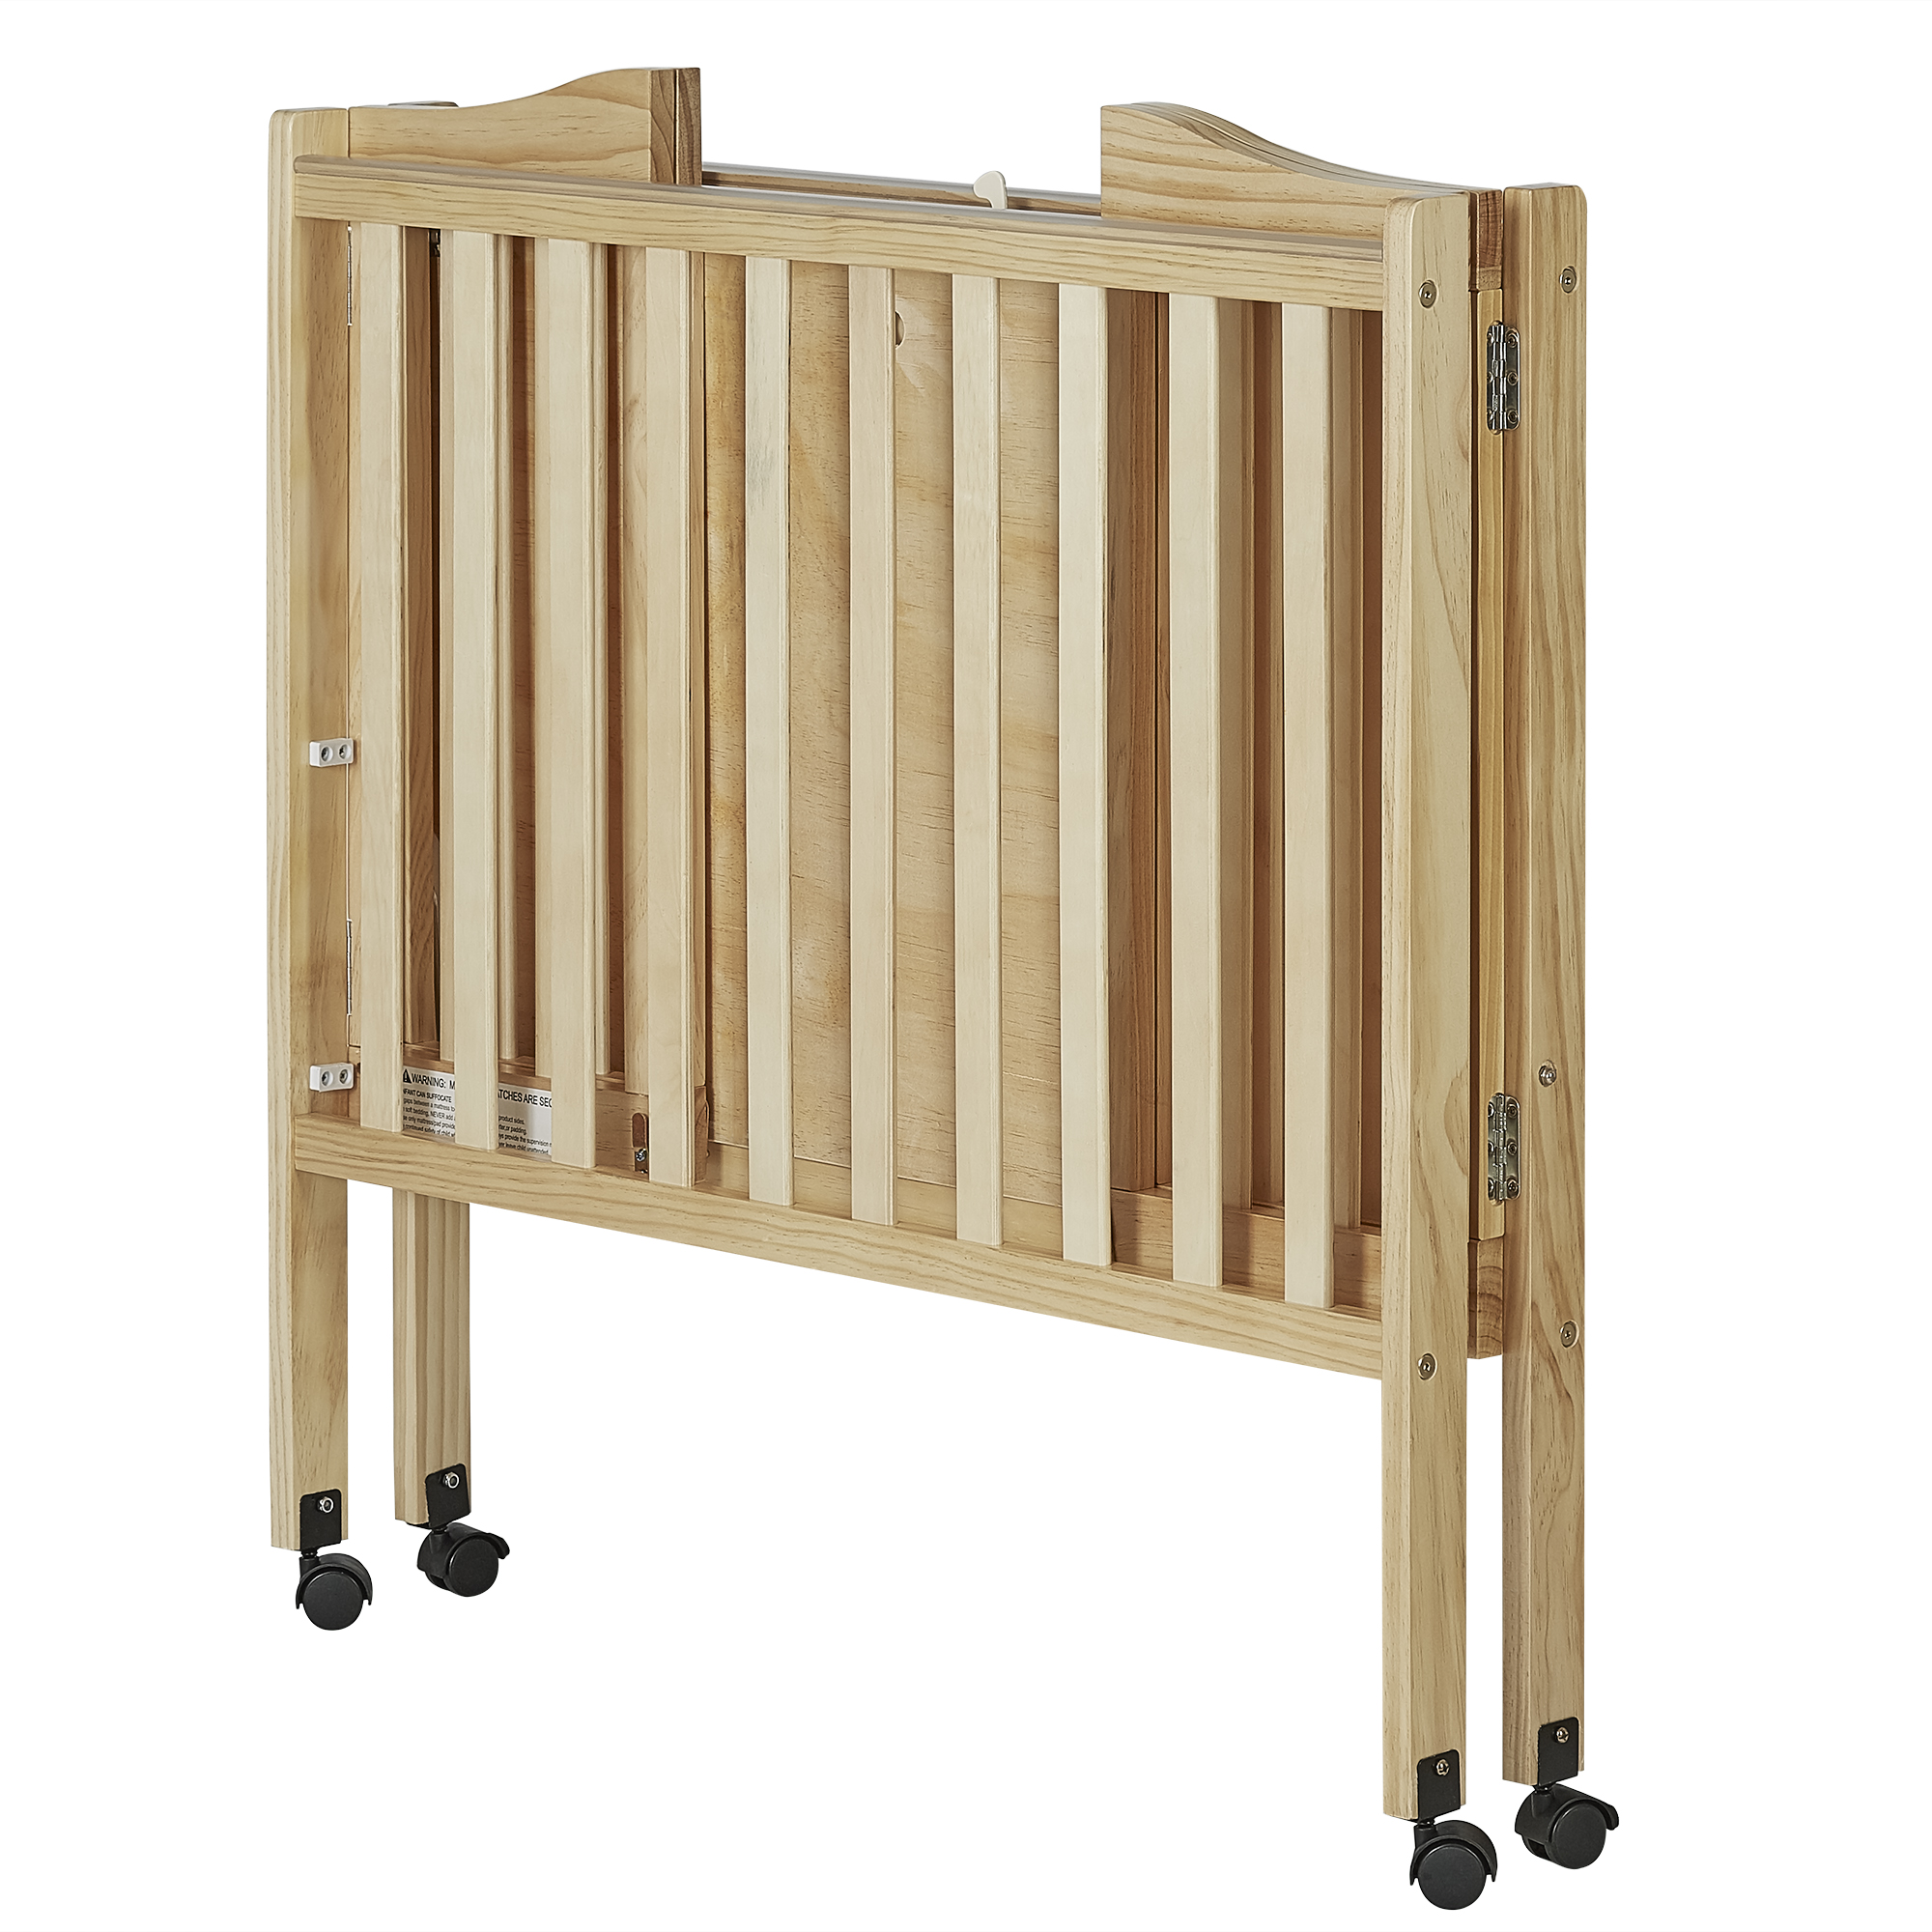 Superb Dream On Me 2 In 1 Lightweight Portable Folding Crib Natural Image 4 Of